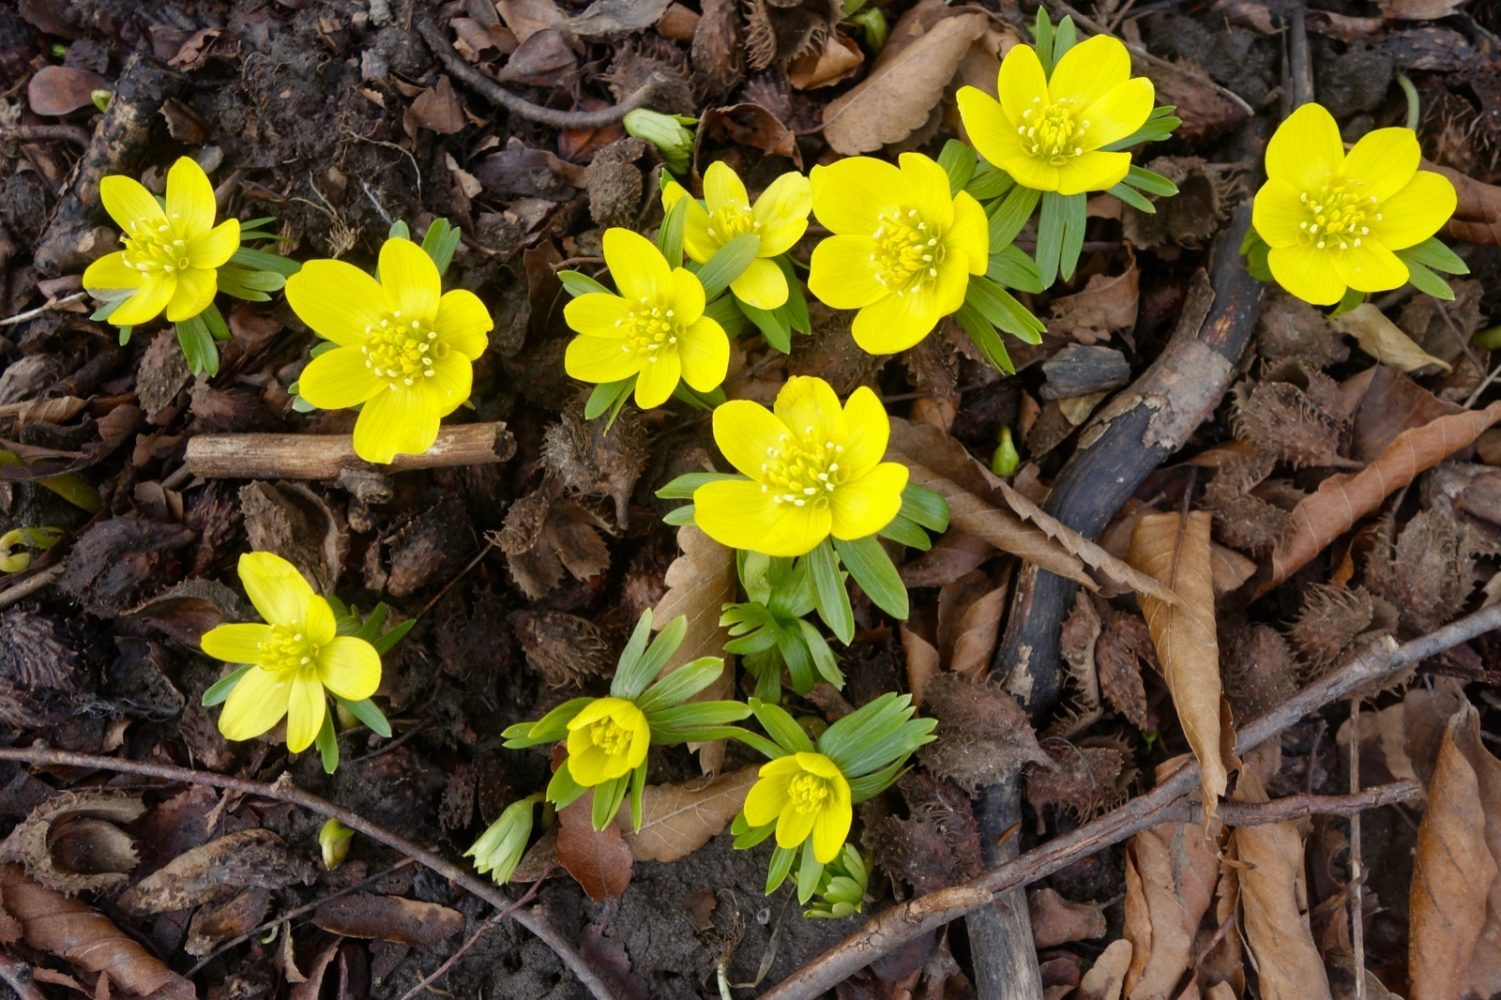 Winter Aconite in full bloom for the past week 2019